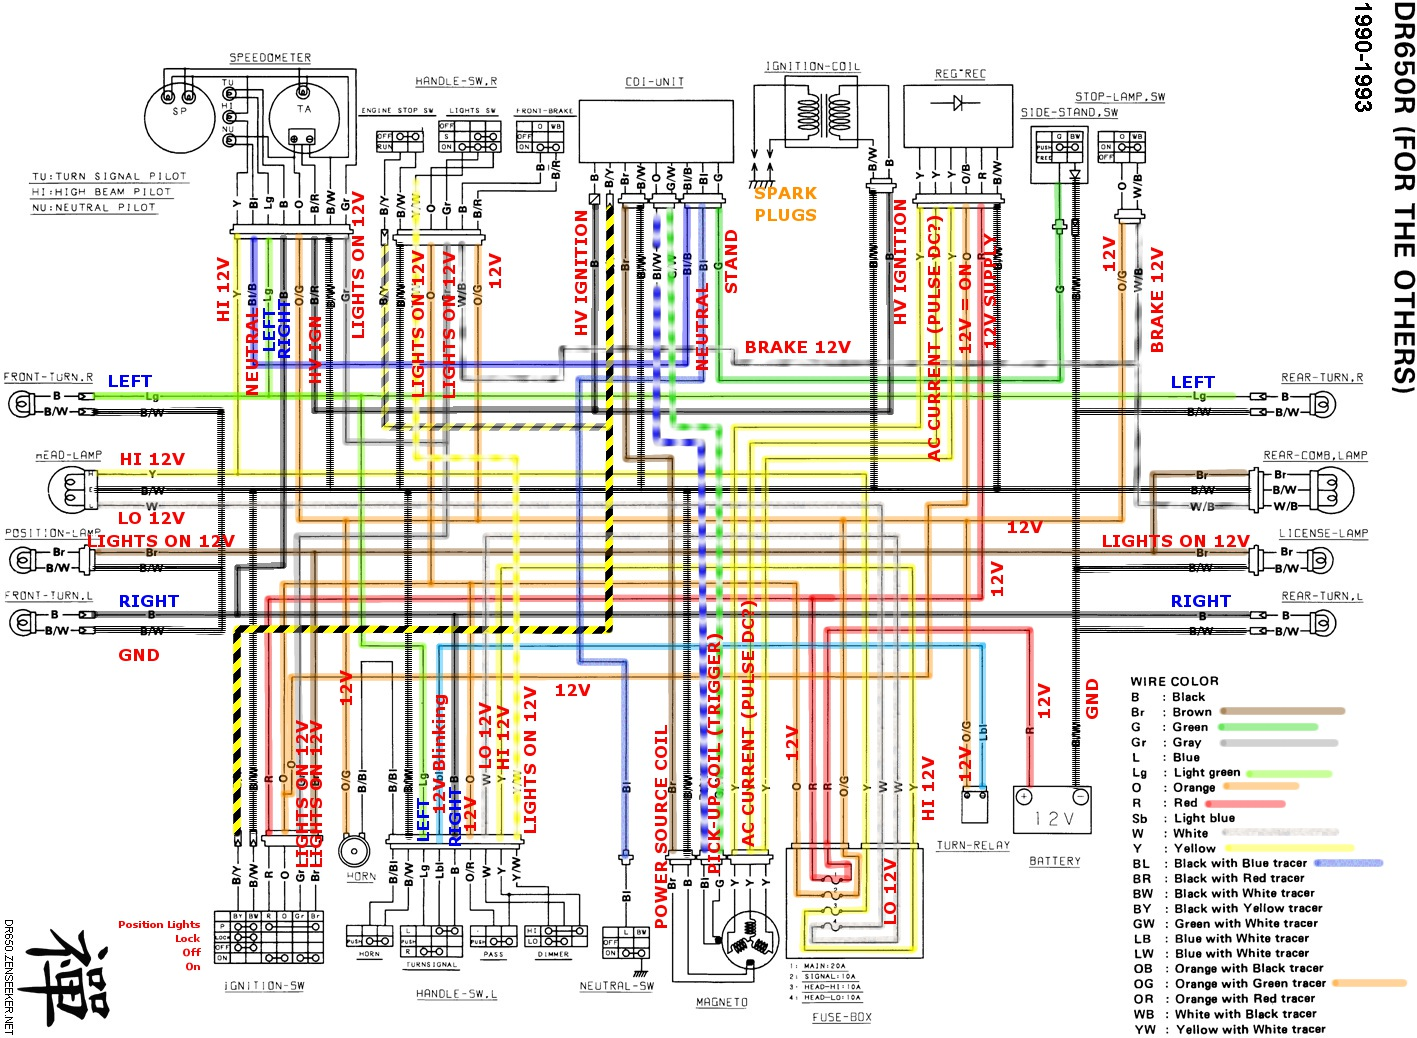 Kenworth T800 Wiring Diagram Pdf from dr650.zenseeker.net